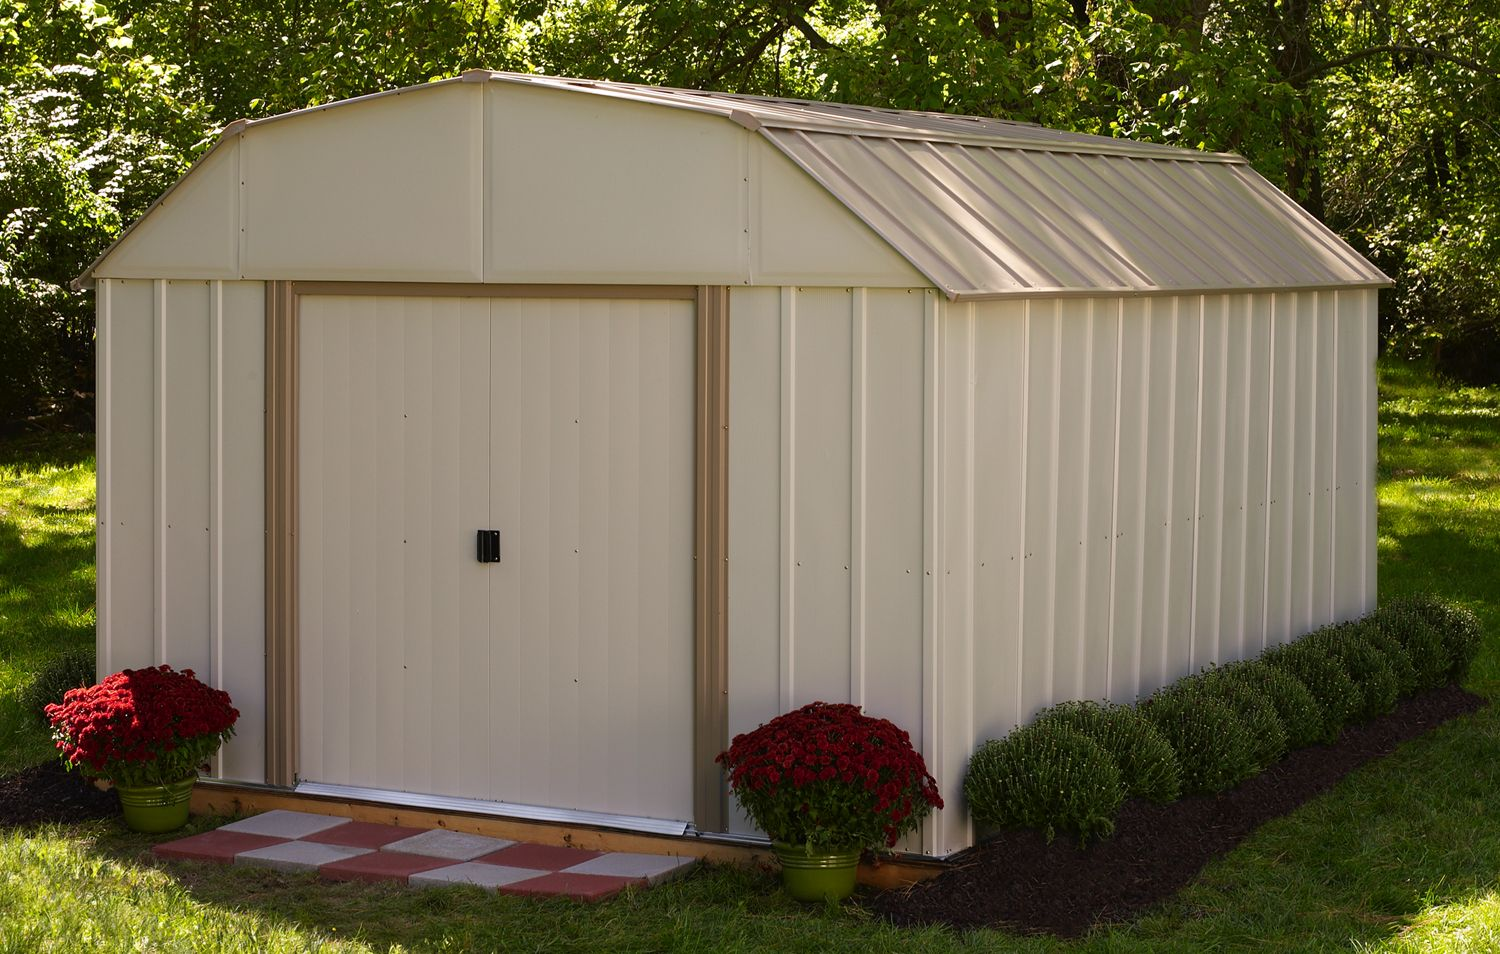 Lx1014 Lexington Barn Style Roof Garden Shed Http Www Arrowsheds Com Standardsheds Lexington Lx1014 Html With Images Steel Sheds 10x10 Shed Plans Shed Plans